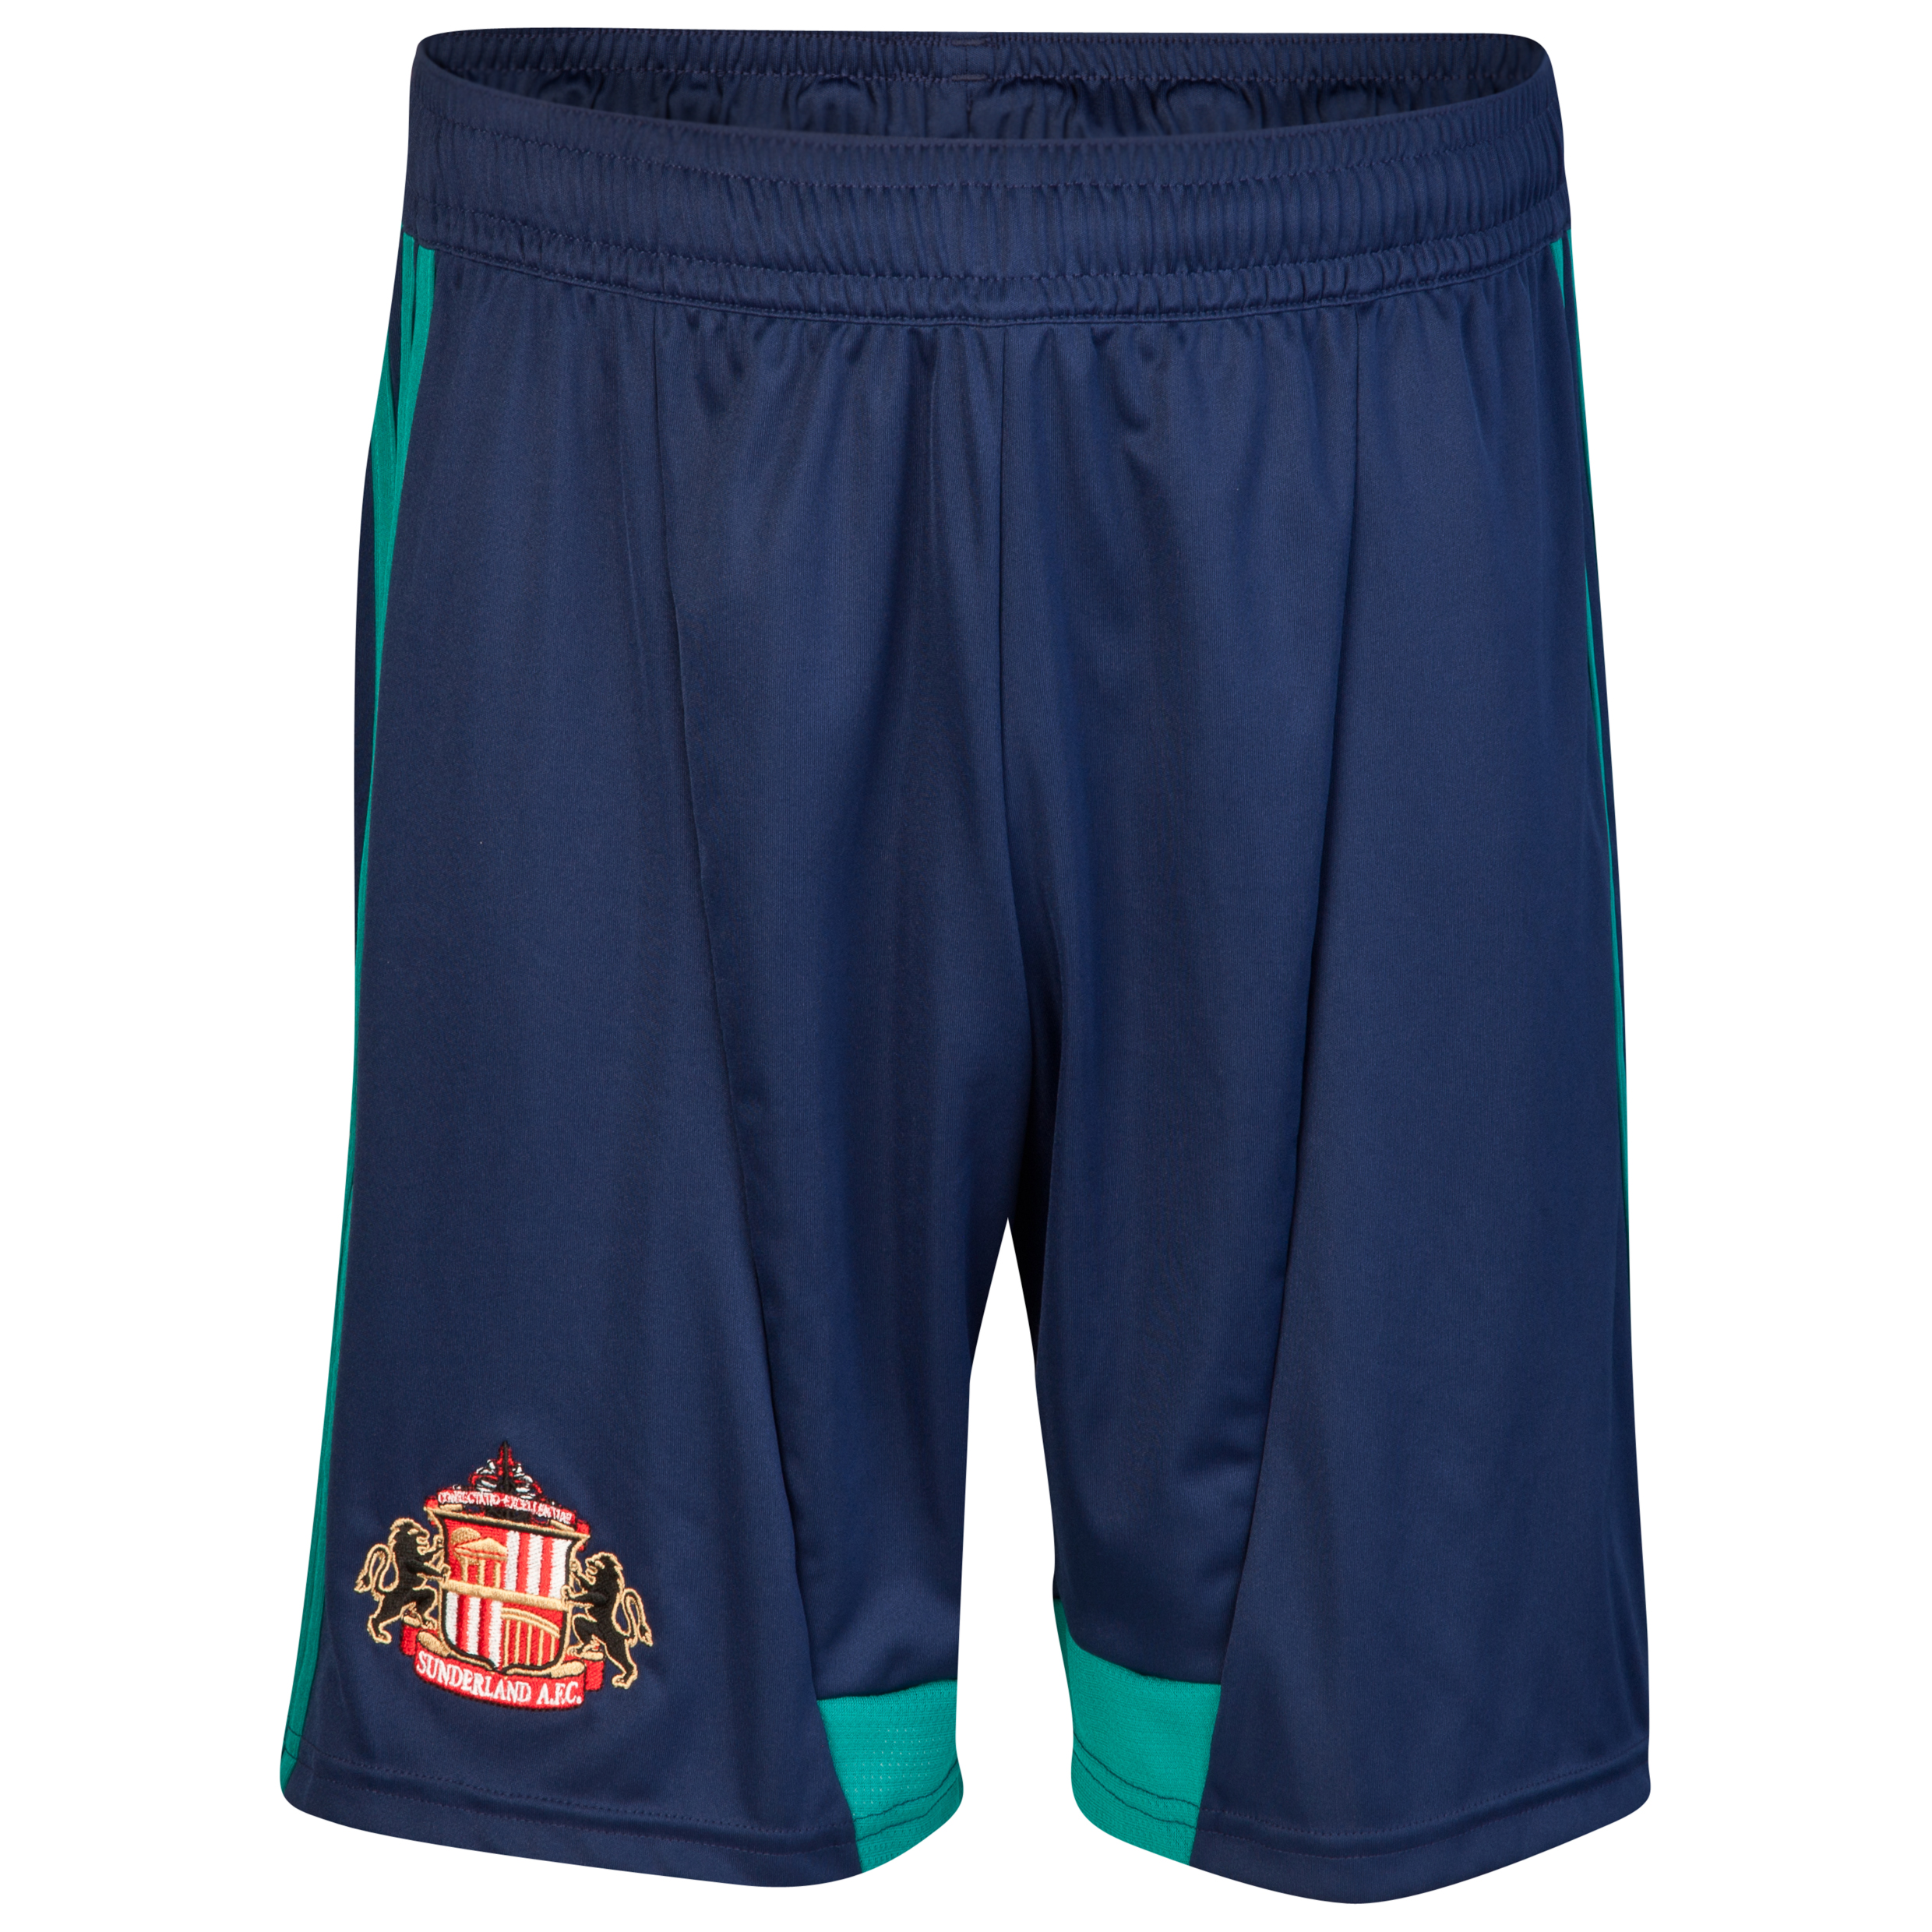 Sunderland Away Short 2012/13